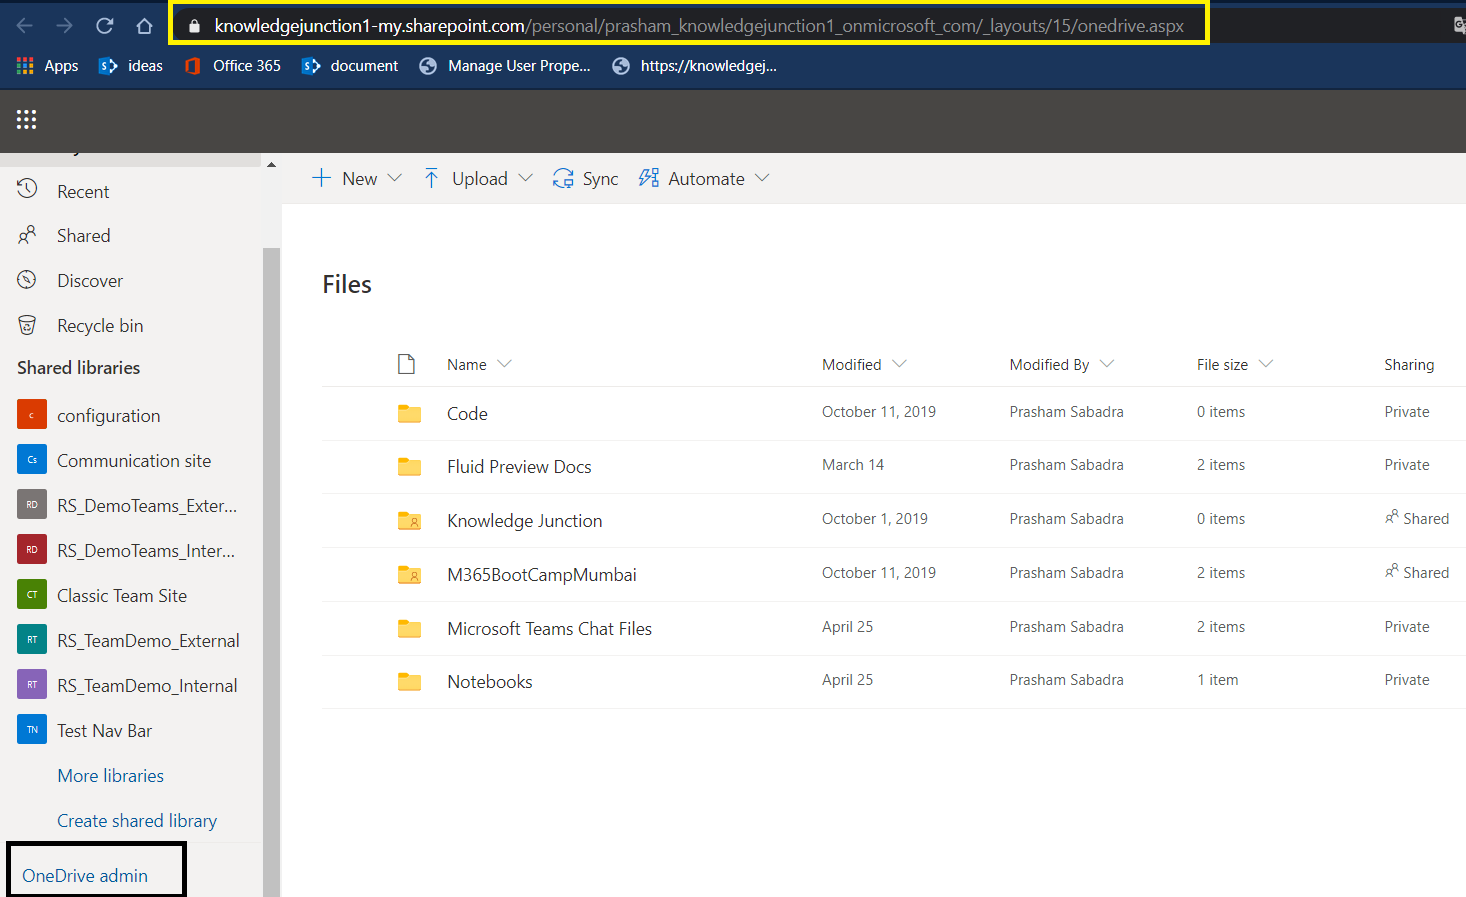 OneDrive admin link on OneDrive home page